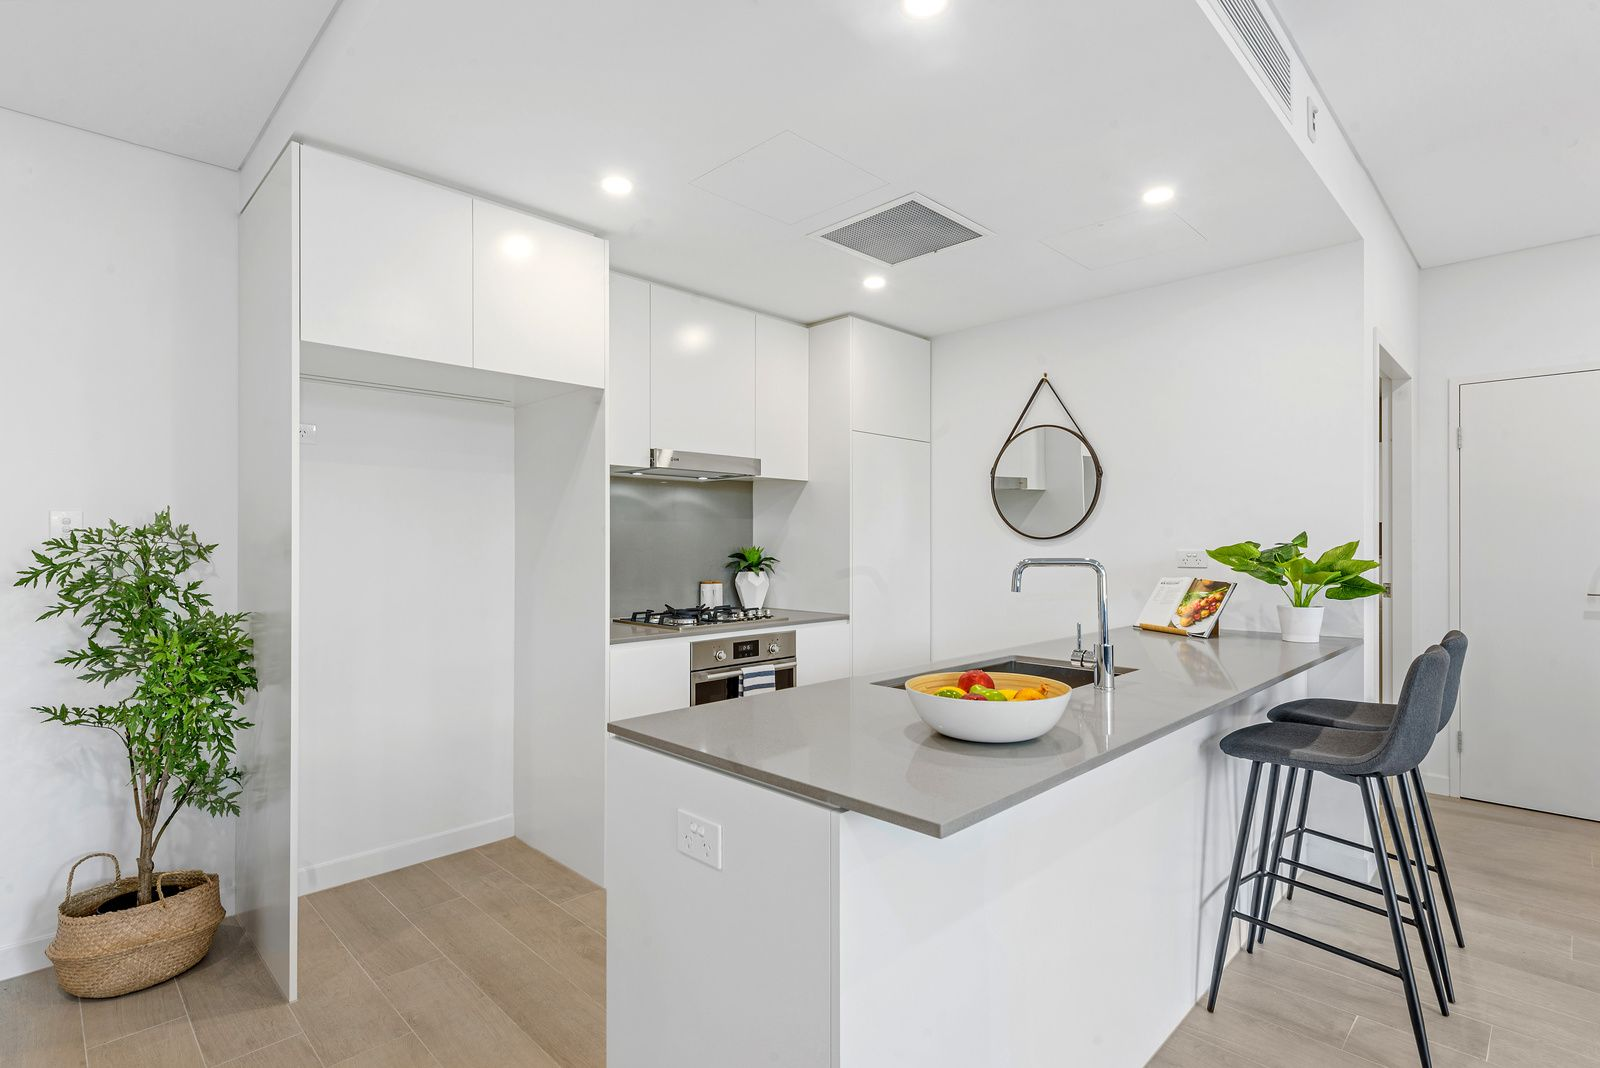 2/19 Robey Street, Mascot NSW 2020 - Apartment For Rent ...